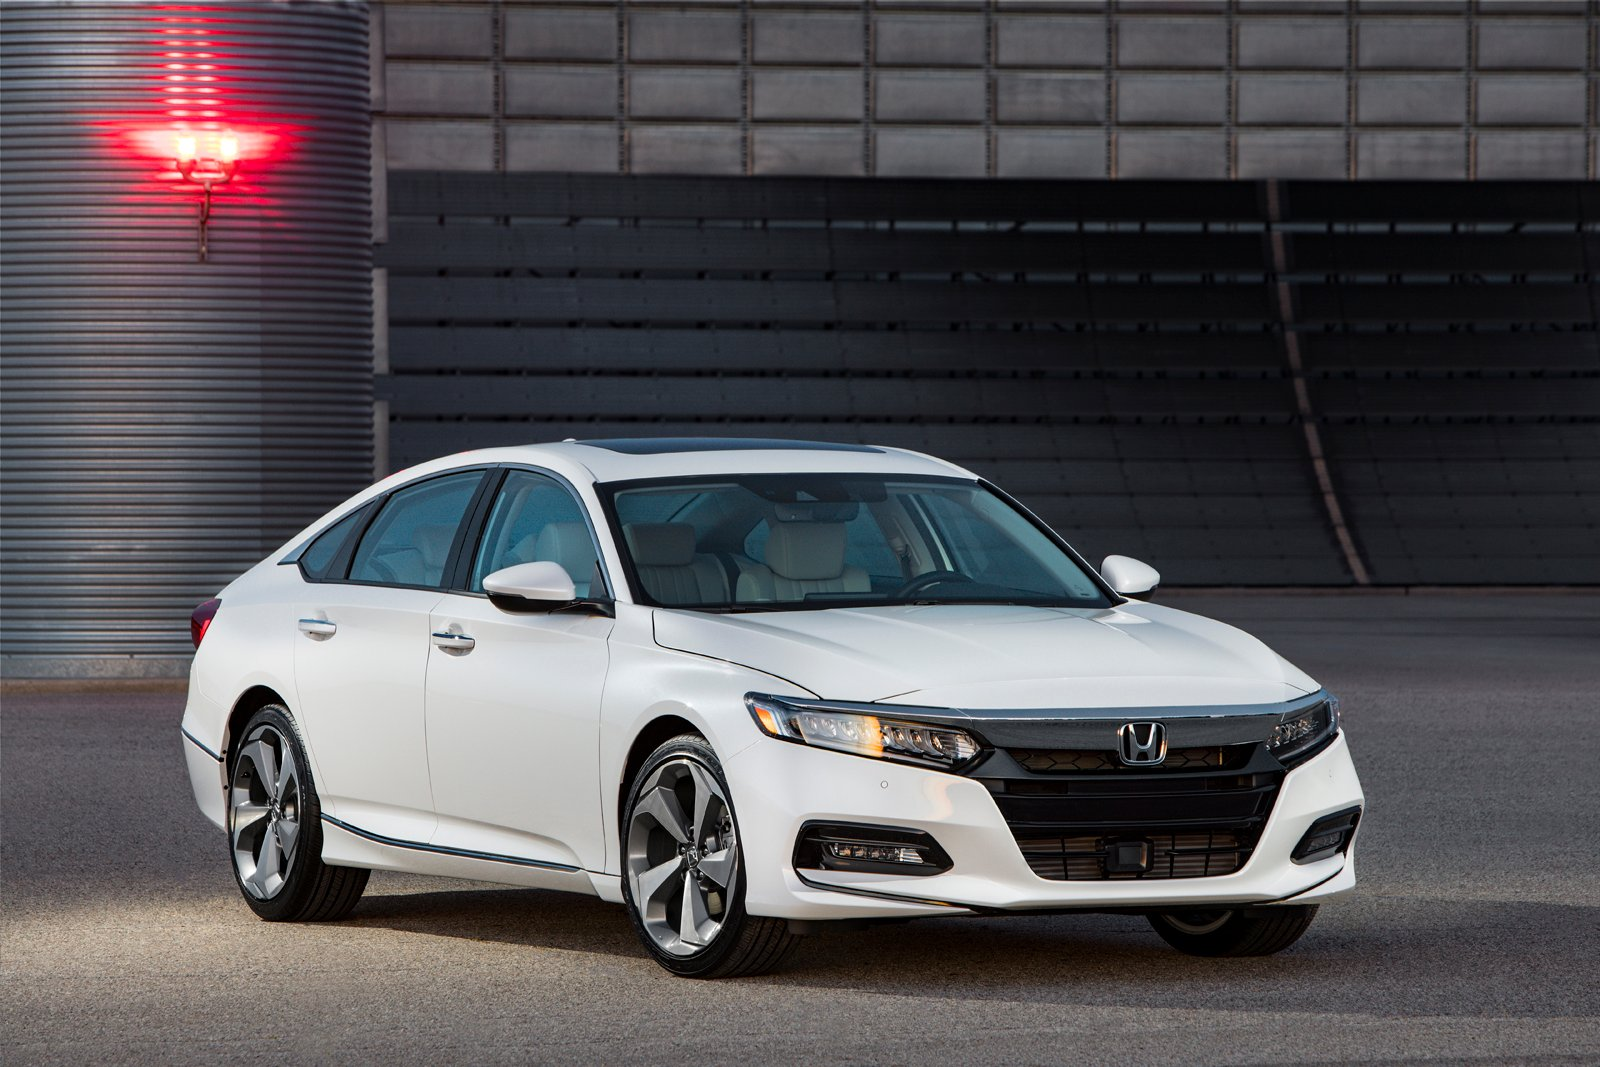 Honda Accord Pricing And Fuel Economy Announced AutoGuide - Accord vehicle